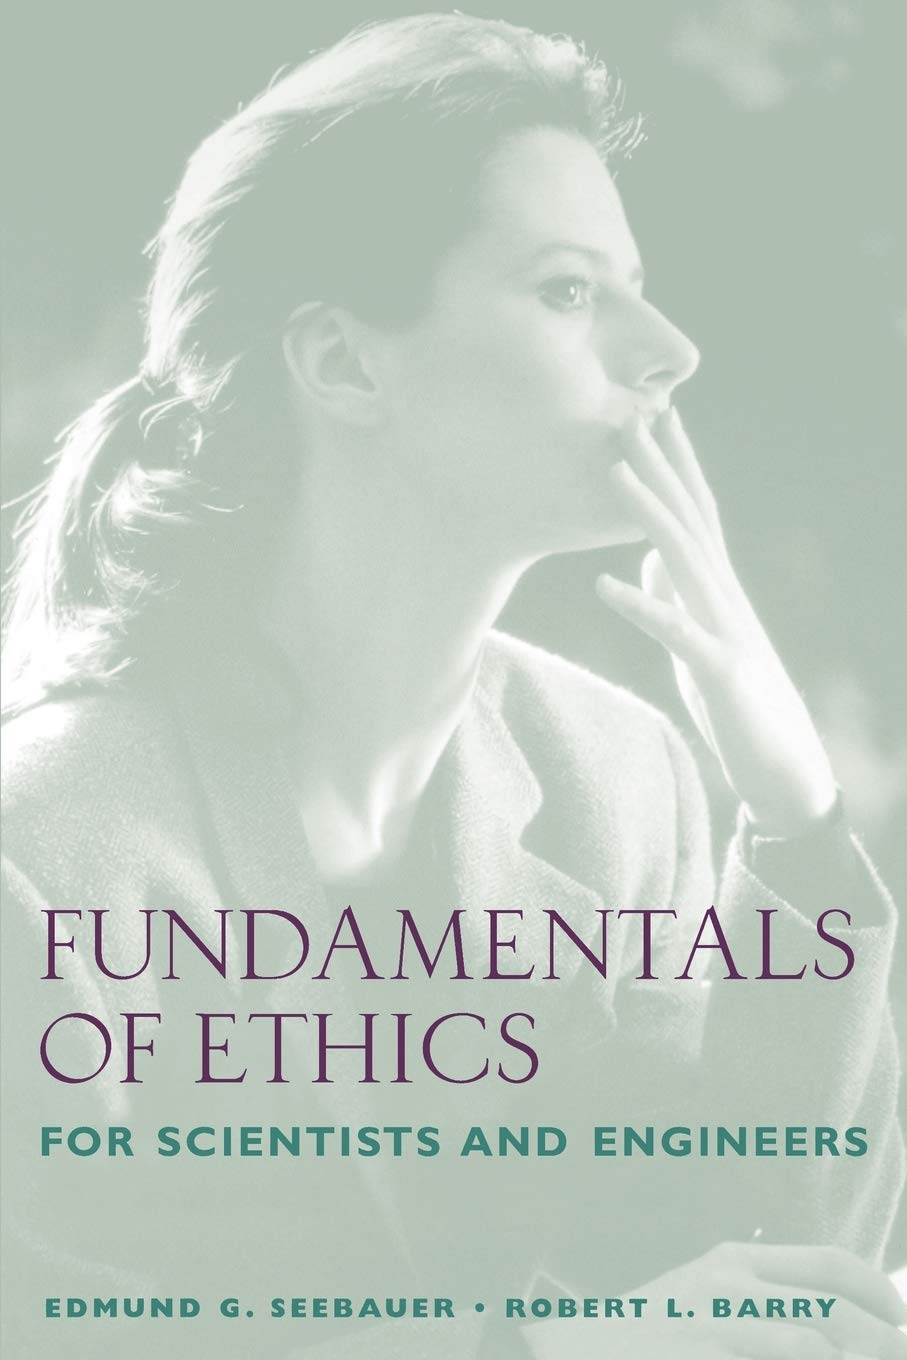 Buy Fundamentals Of Ethics For Scientists And Engineers Book Online At Low Prices In India Fundamentals Of Ethics For Scientists And Engineers Reviews Ratings Amazon In